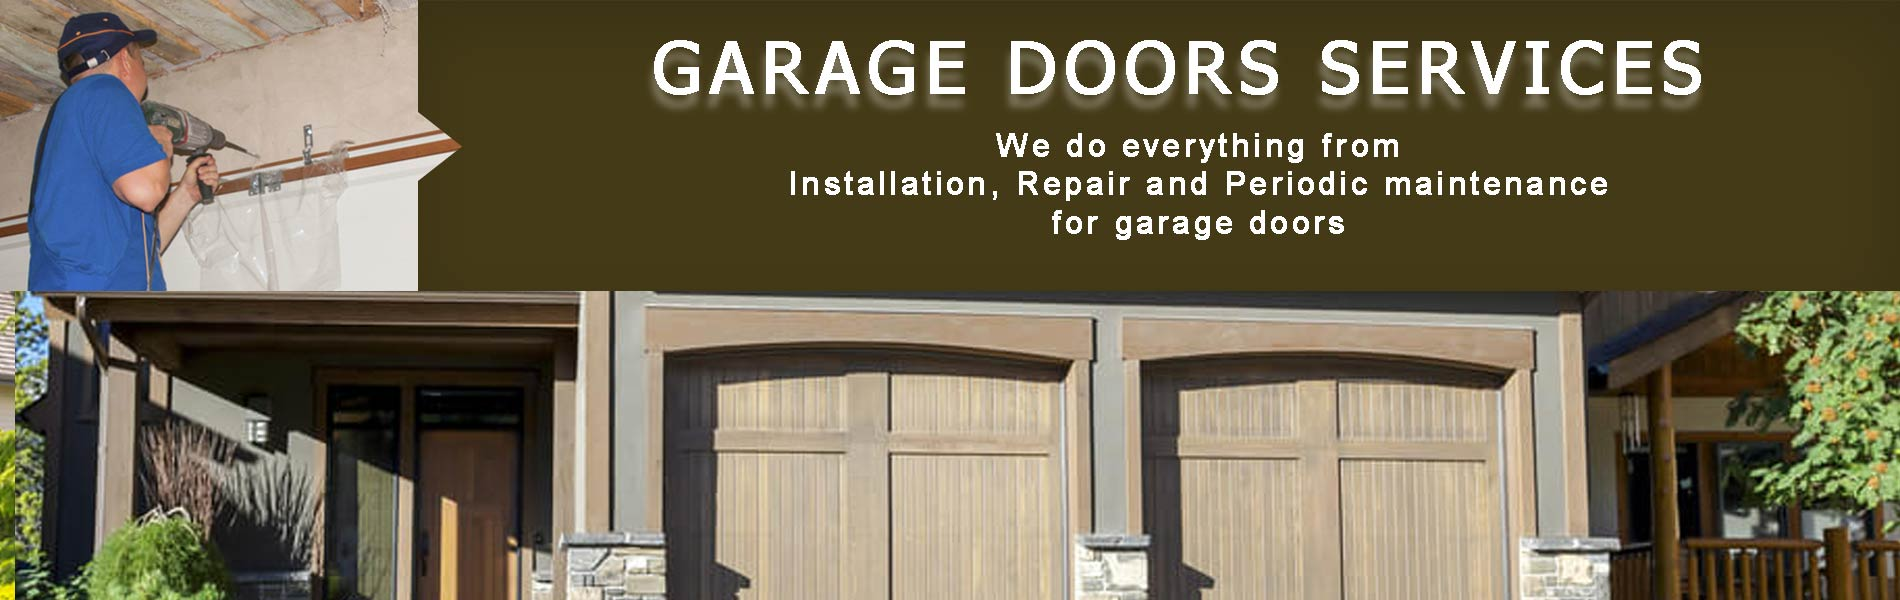 United Garage Door Service Philadelphia, PA 215-859-5085